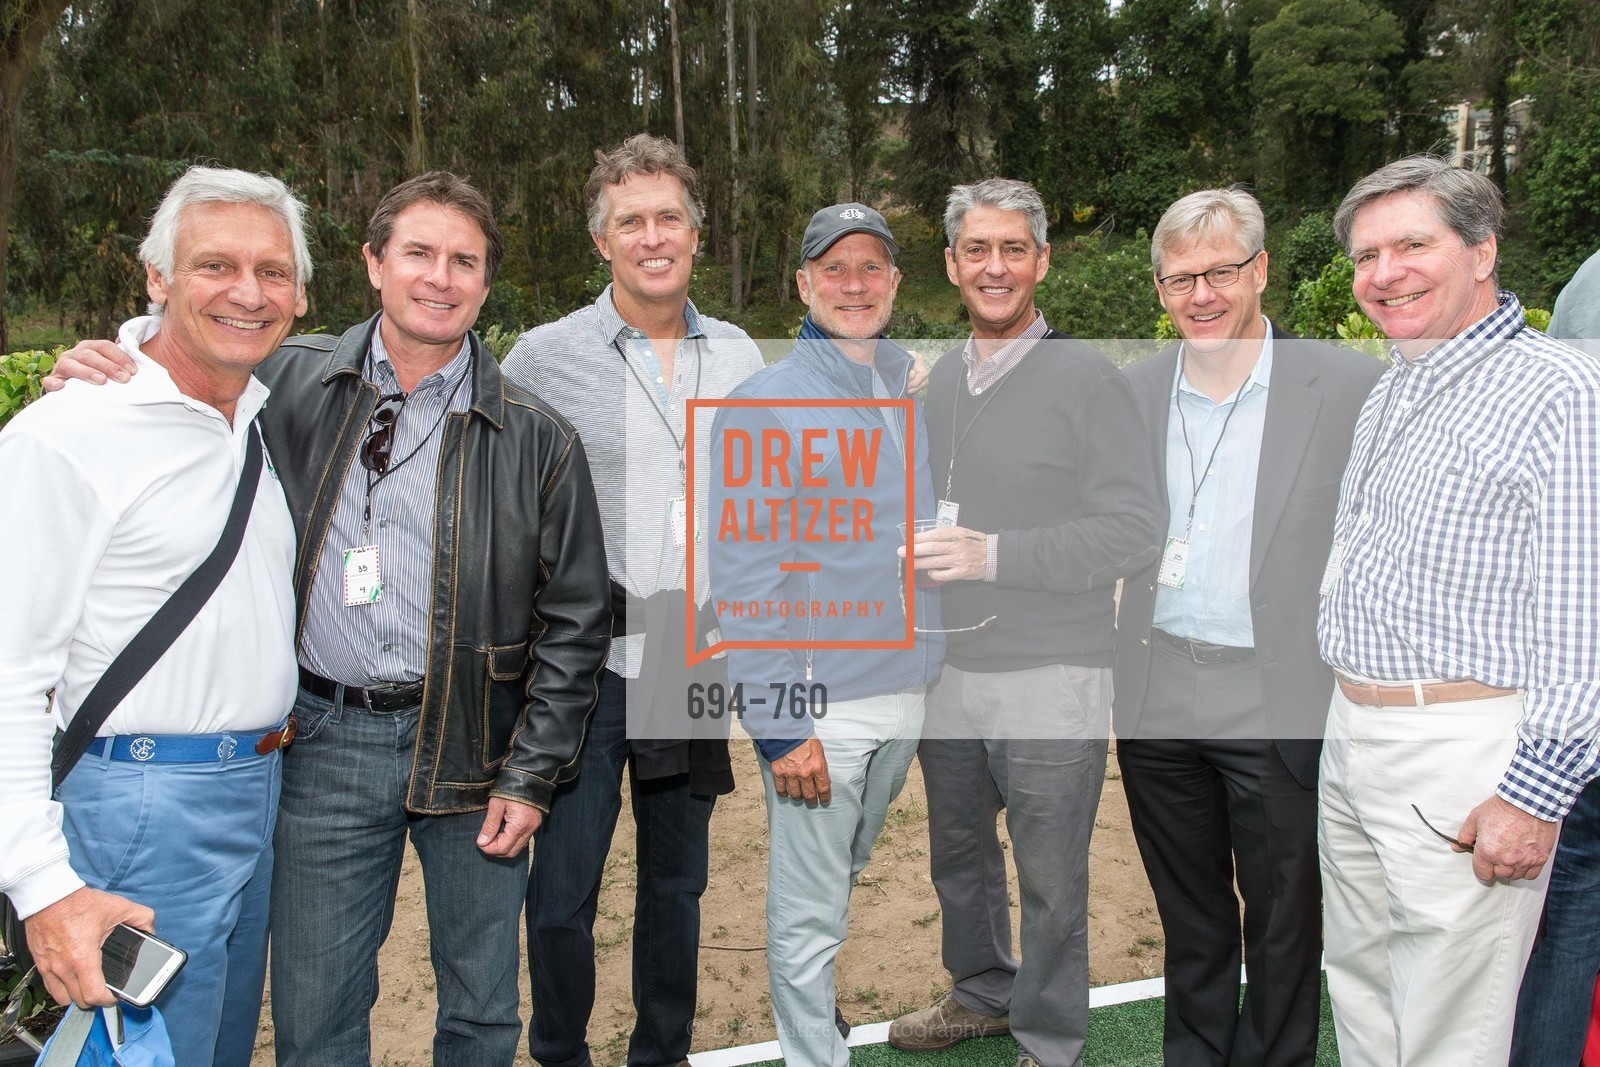 Dean Riskas, Larry Solomon, Mike Corley, Richard Steiny, Tom Suiter, Bill Ring, Tom Walsh, The Big Picnic! A Benefit & Concert for STERN GROVE FESTIVAL, US, June 14th, 2015,Drew Altizer, Drew Altizer Photography, full-service agency, private events, San Francisco photographer, photographer california